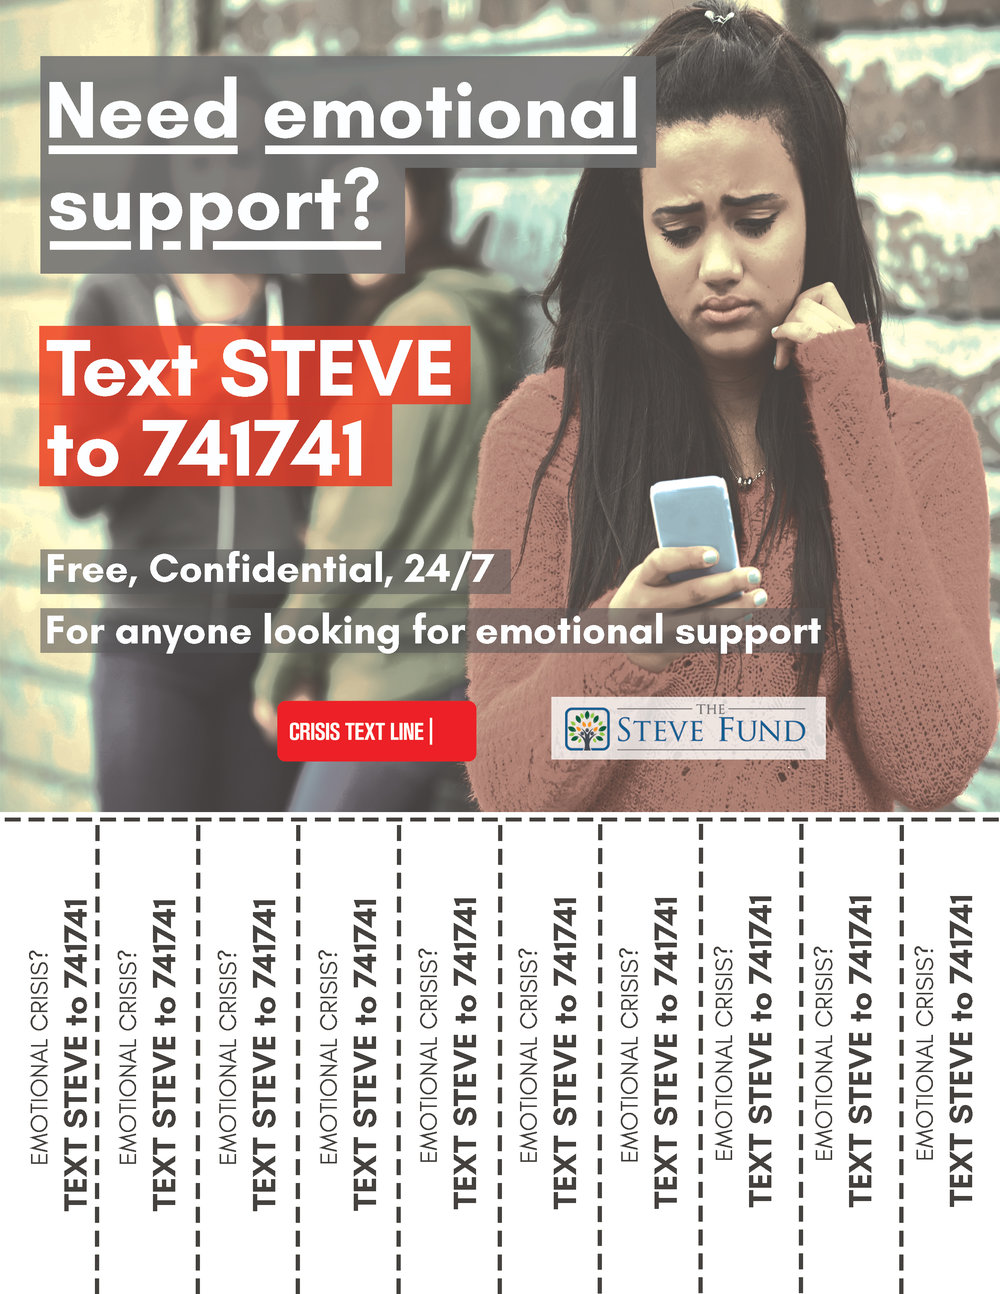 Stressed Female Texting Tear Off Flyer 3.14.17.jpg